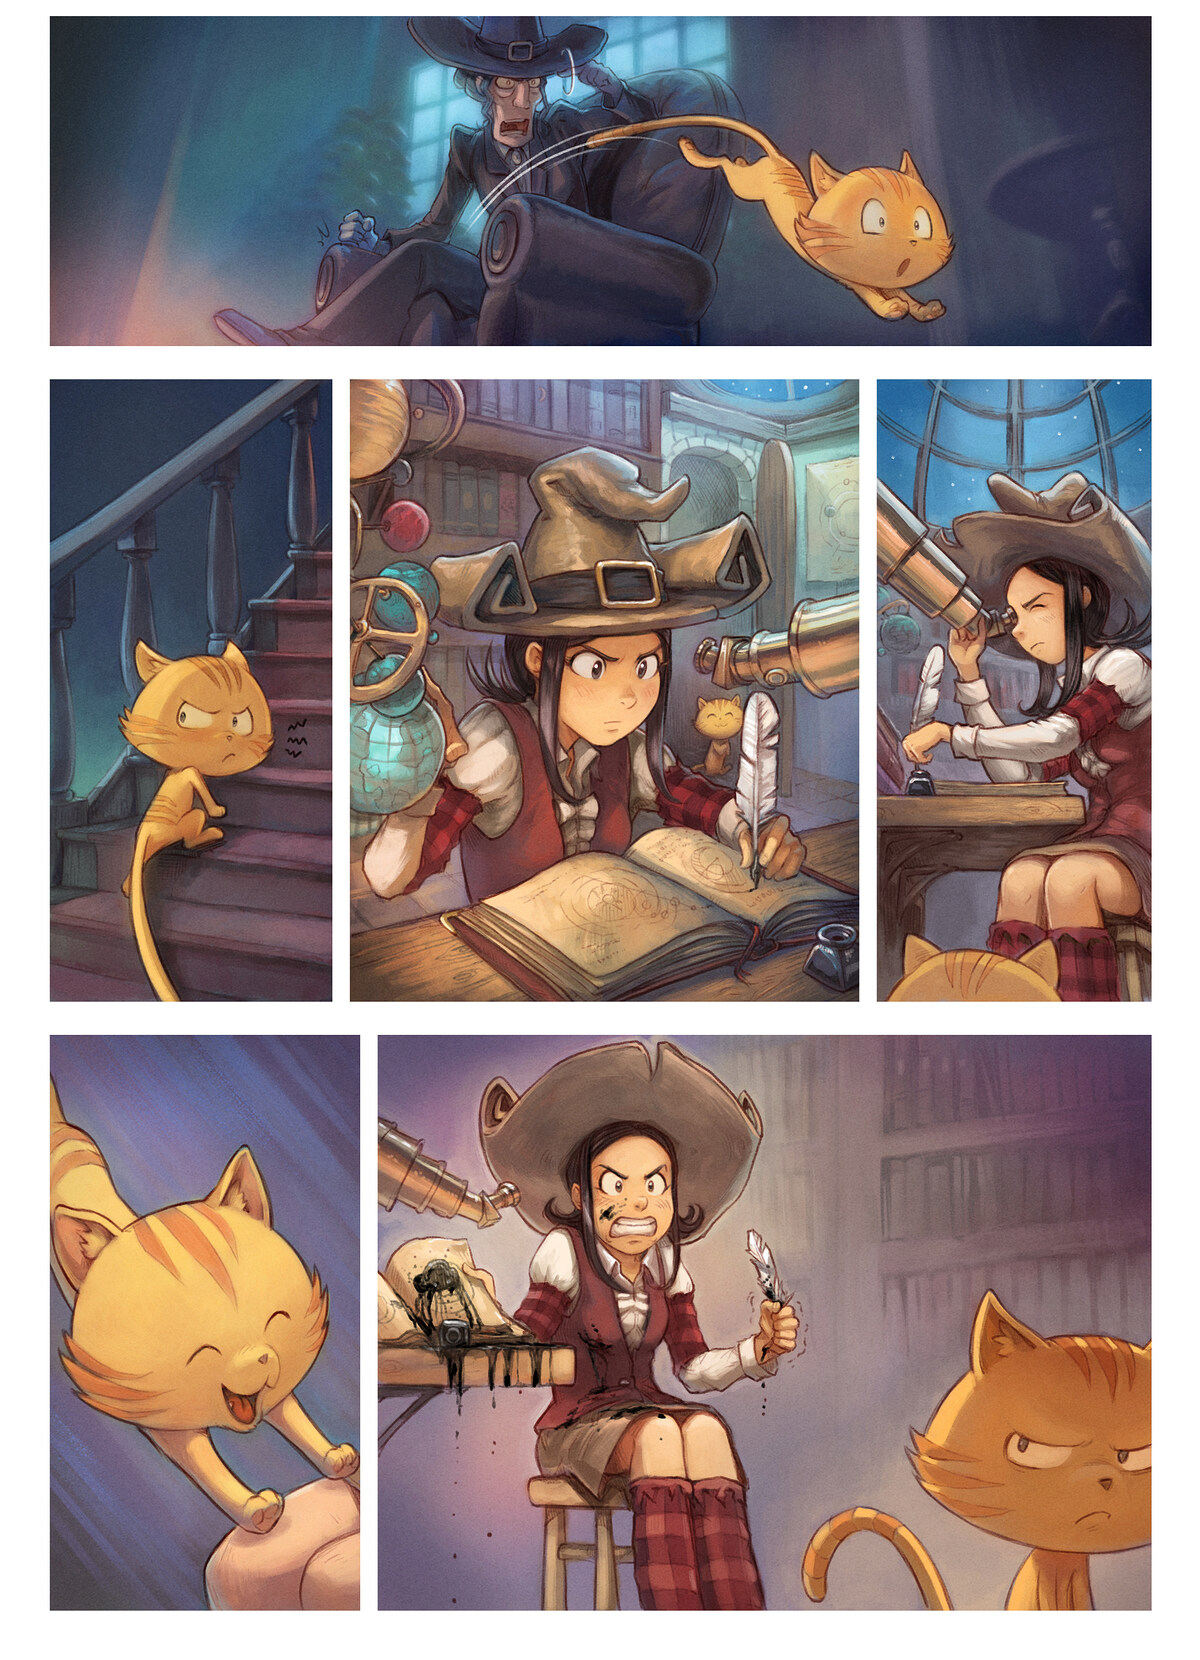 A webcomic page of Pepper&Carrot, Tập 30 [vi], trang 3